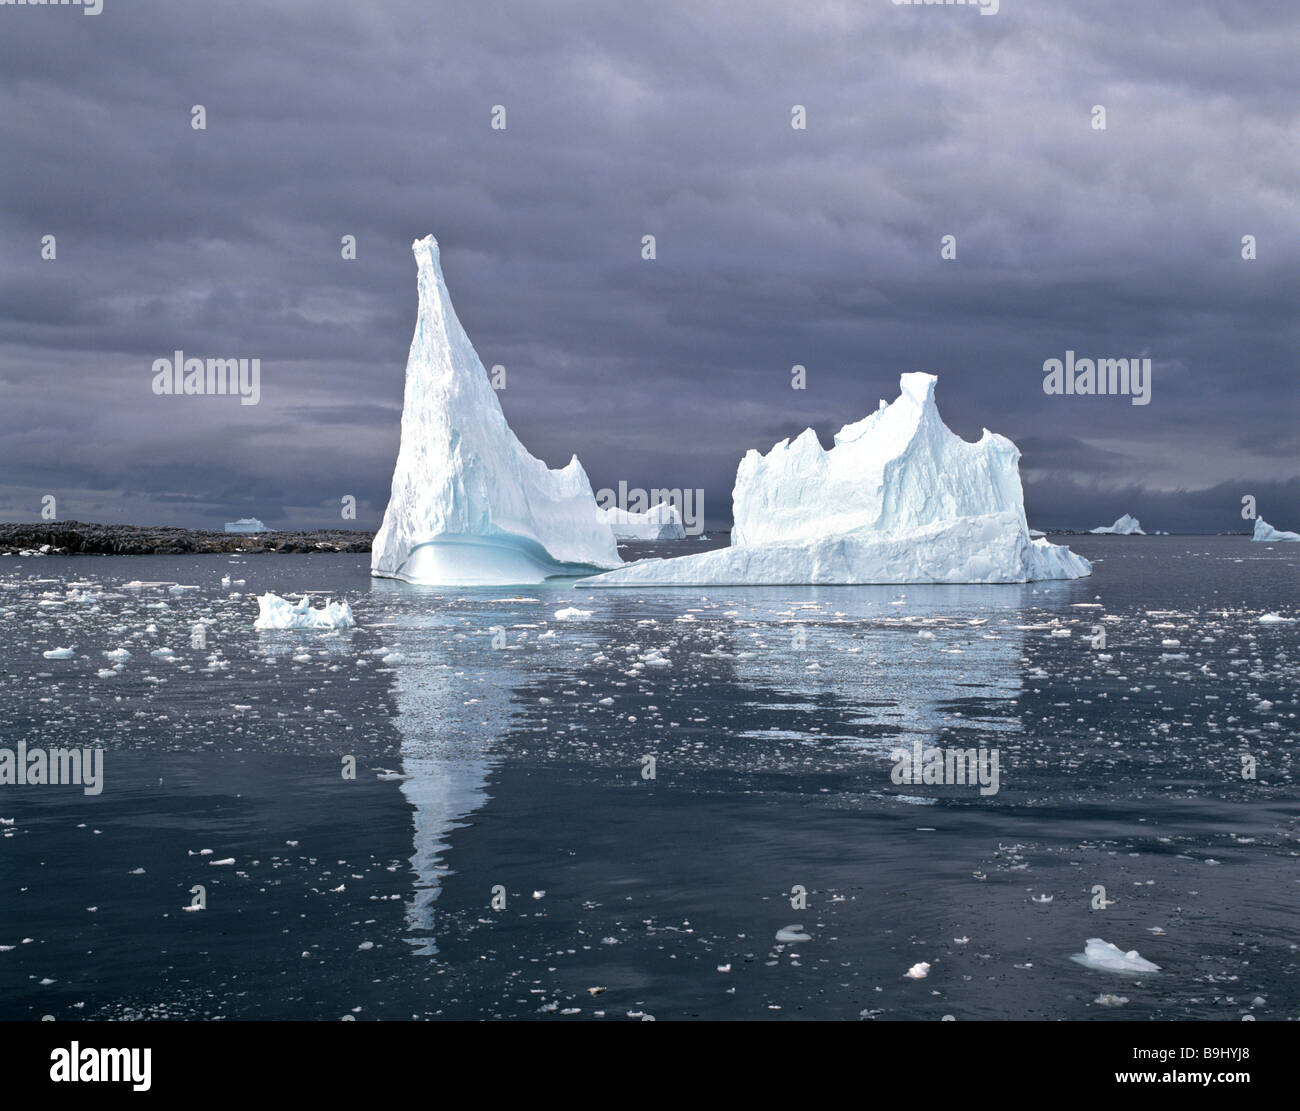 Pointy iceberg floating in the polar sea, ice tower, Antarctic - Stock Image